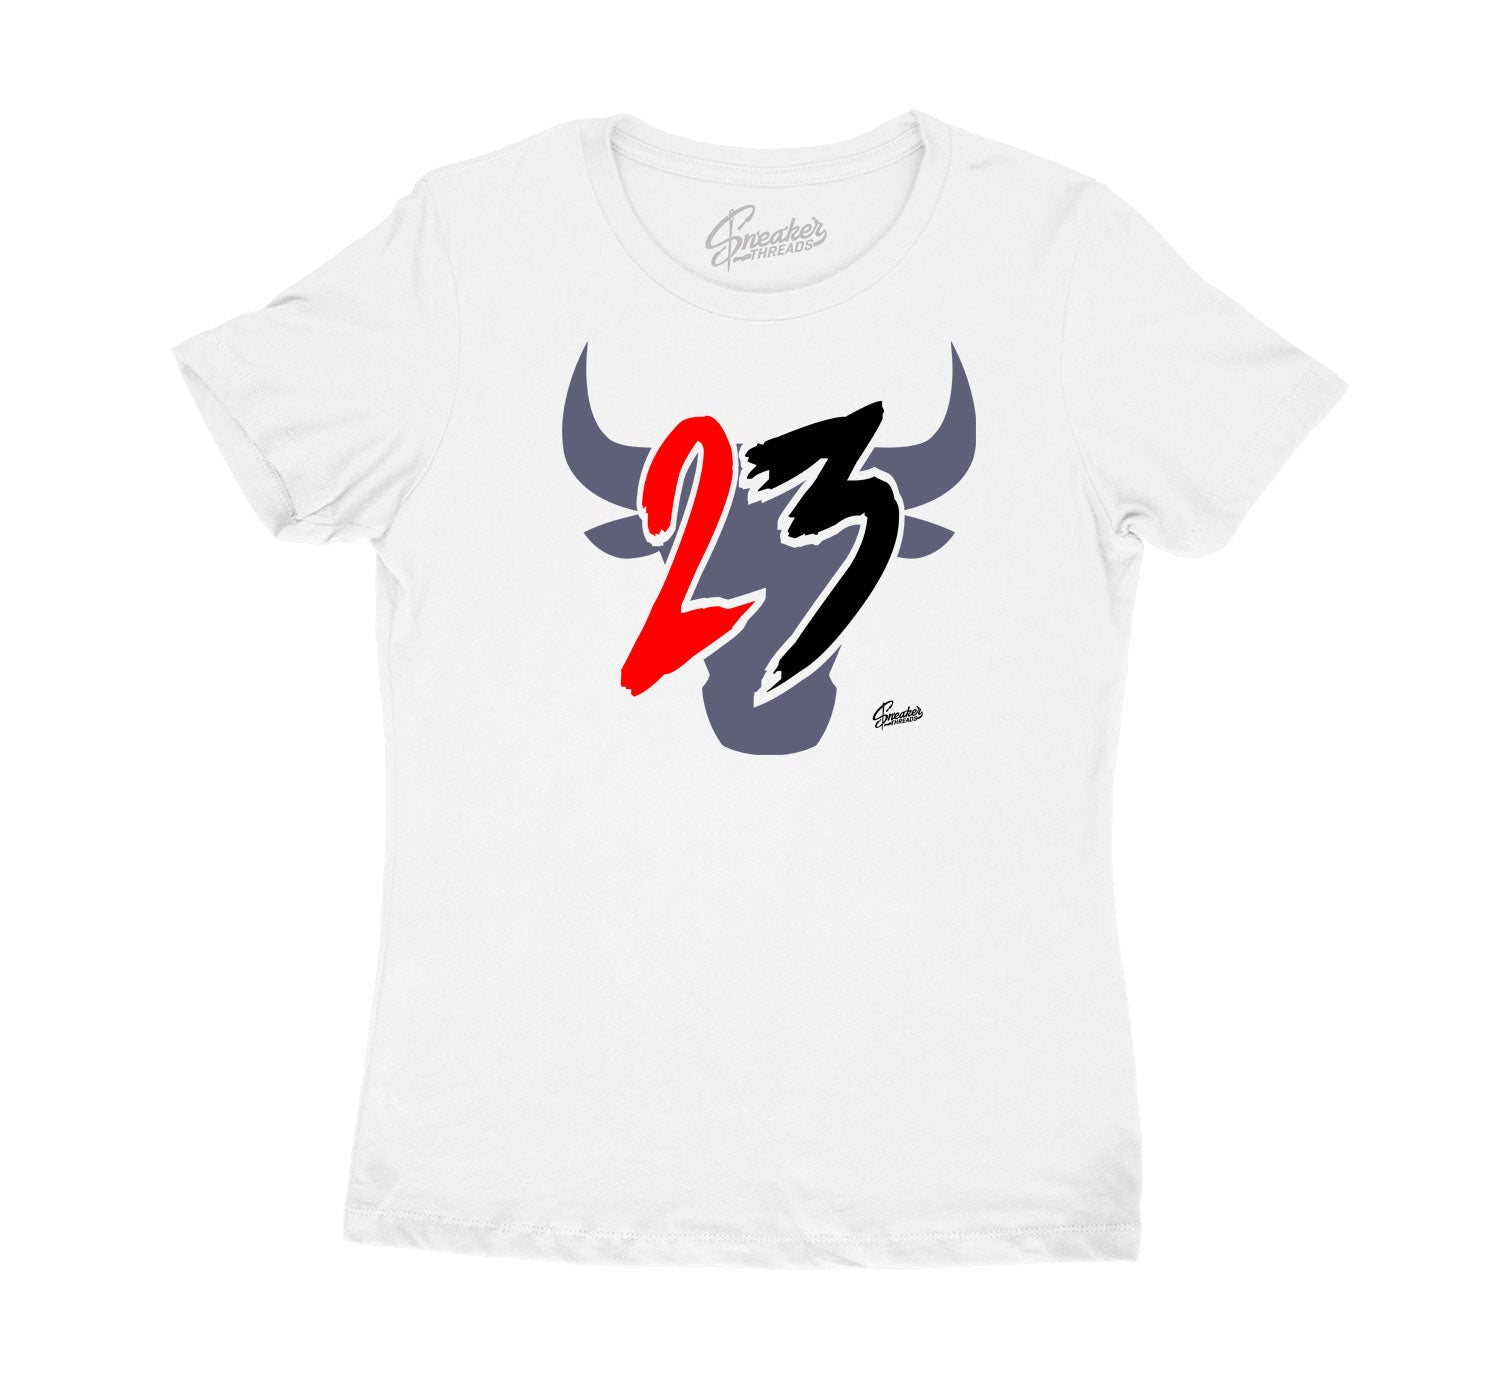 Jordan 3 Fire Denim Sneaker collection matches ladies tee collection